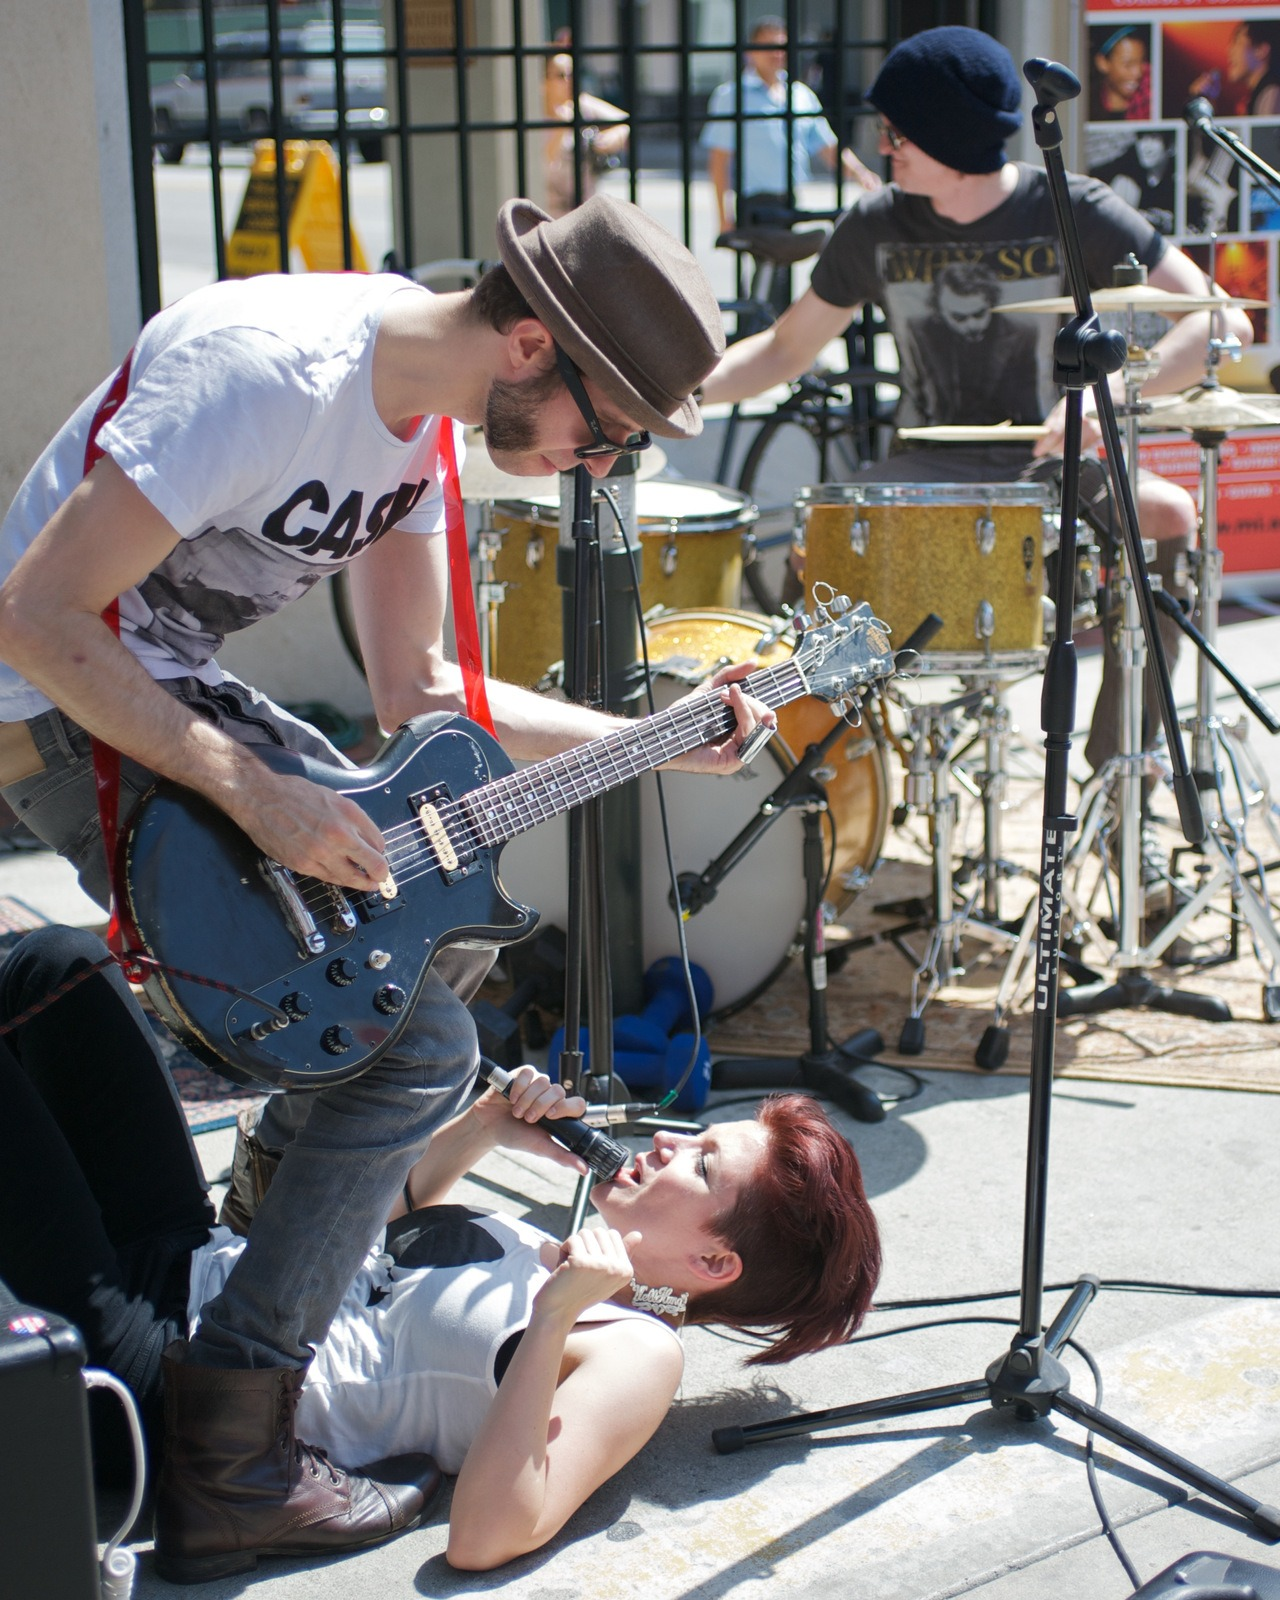 irockphotos :     Well Hung Heart was one of my personal favorites at the Make Music Festival. Robin Davey on guitar and Greta Valenti on lead vocals with Phil Wilson on drums at the Pasadena Make Music Festival in Old Town Pasadena.     http://www.wellhungheart.com/     http://irockphotos.net/    © Guillermo Prieto 2012